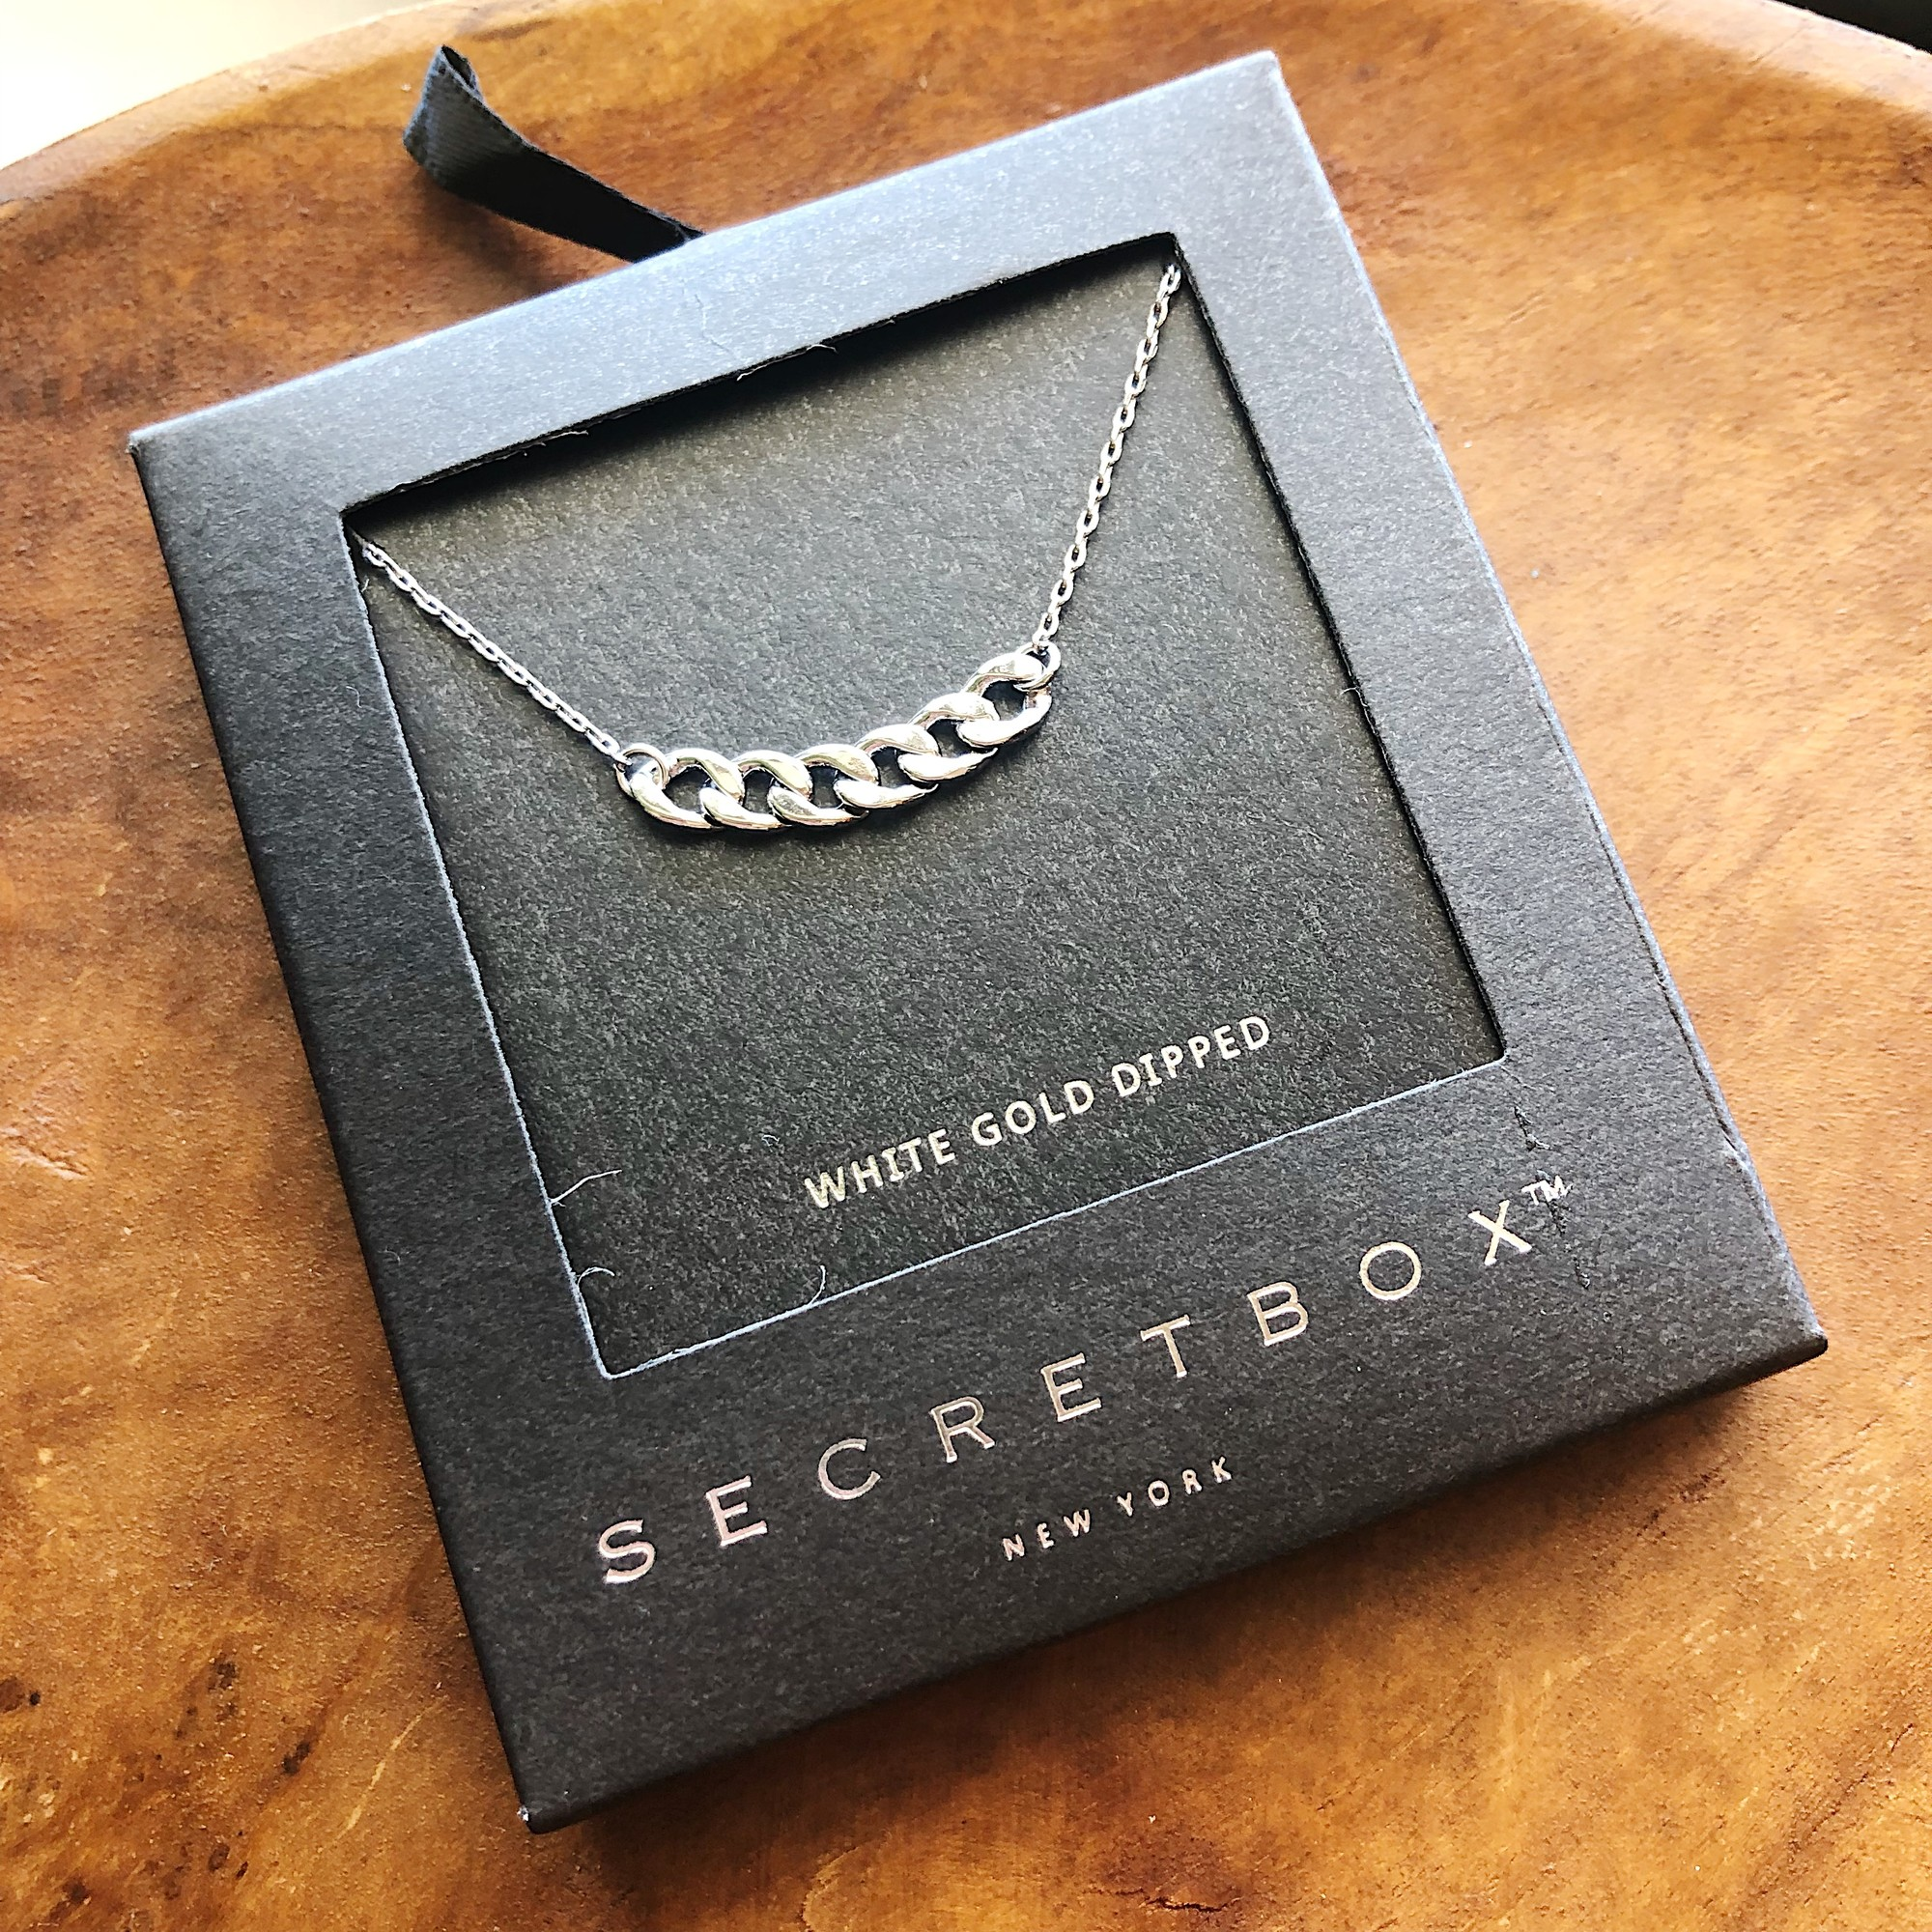 Secretbox Chain, Silver, White Gold Dipped